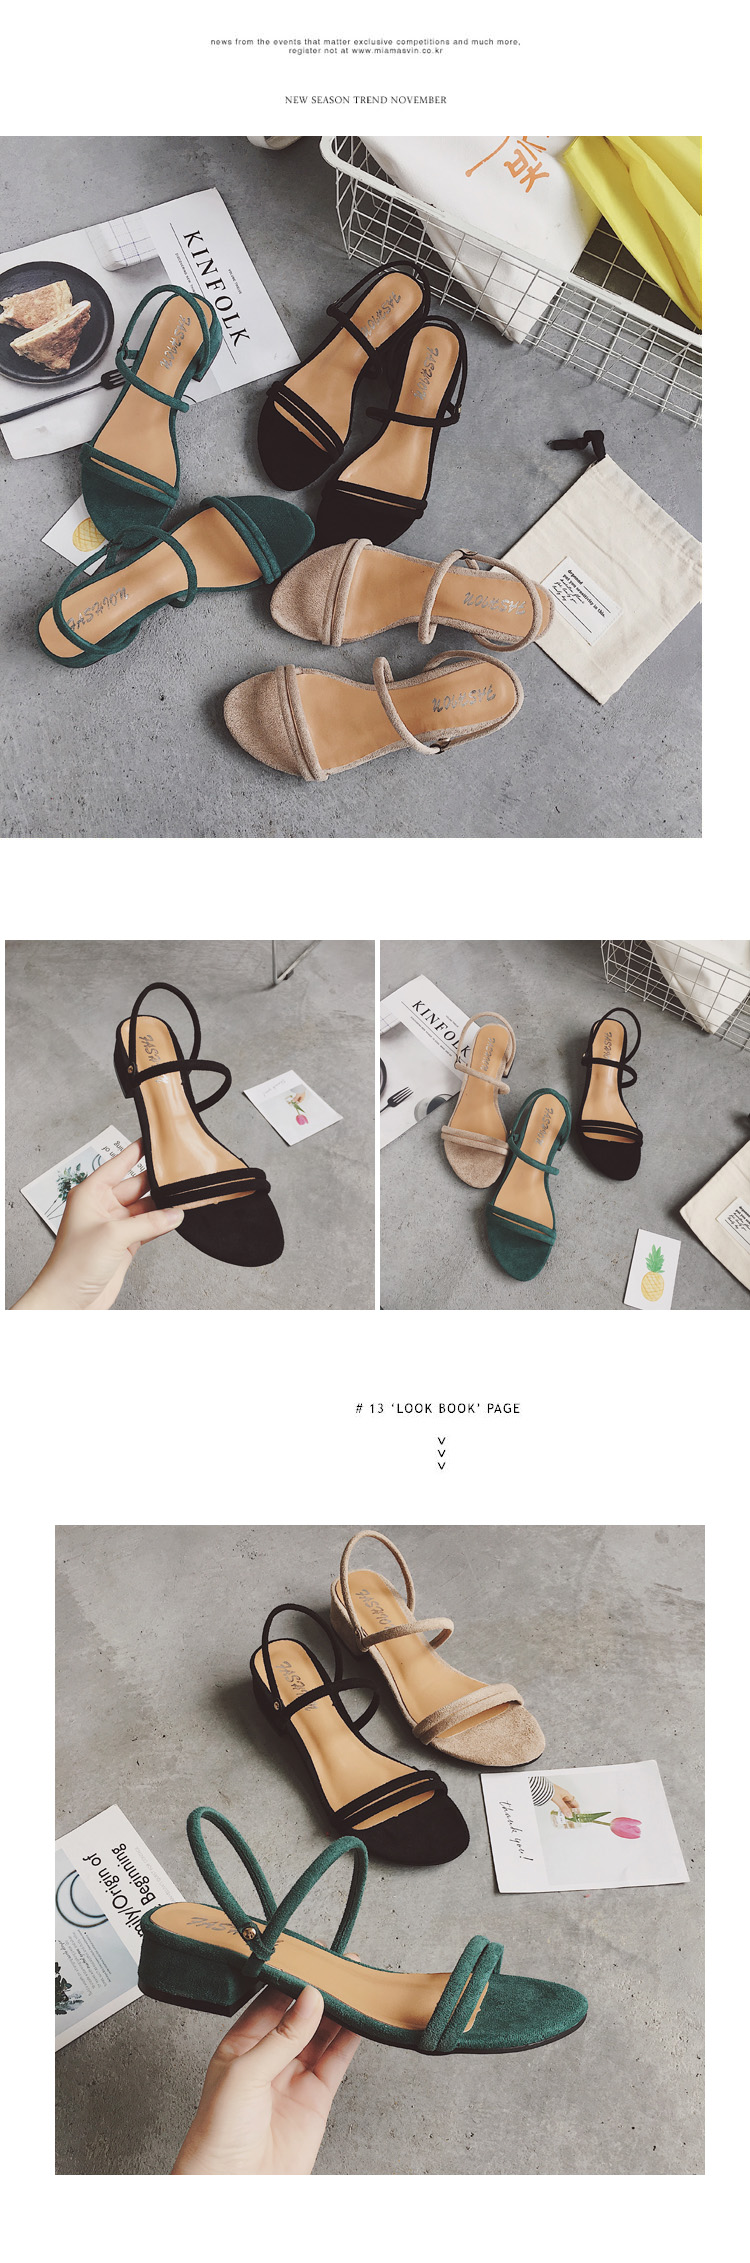 HTB12J9jt JYBeNjy1zeq6yhzVXan new Flat outdoor slippers Sandals foot ring straps beaded Roman sandals fashion low slope with women's shoes low heel shoes x69